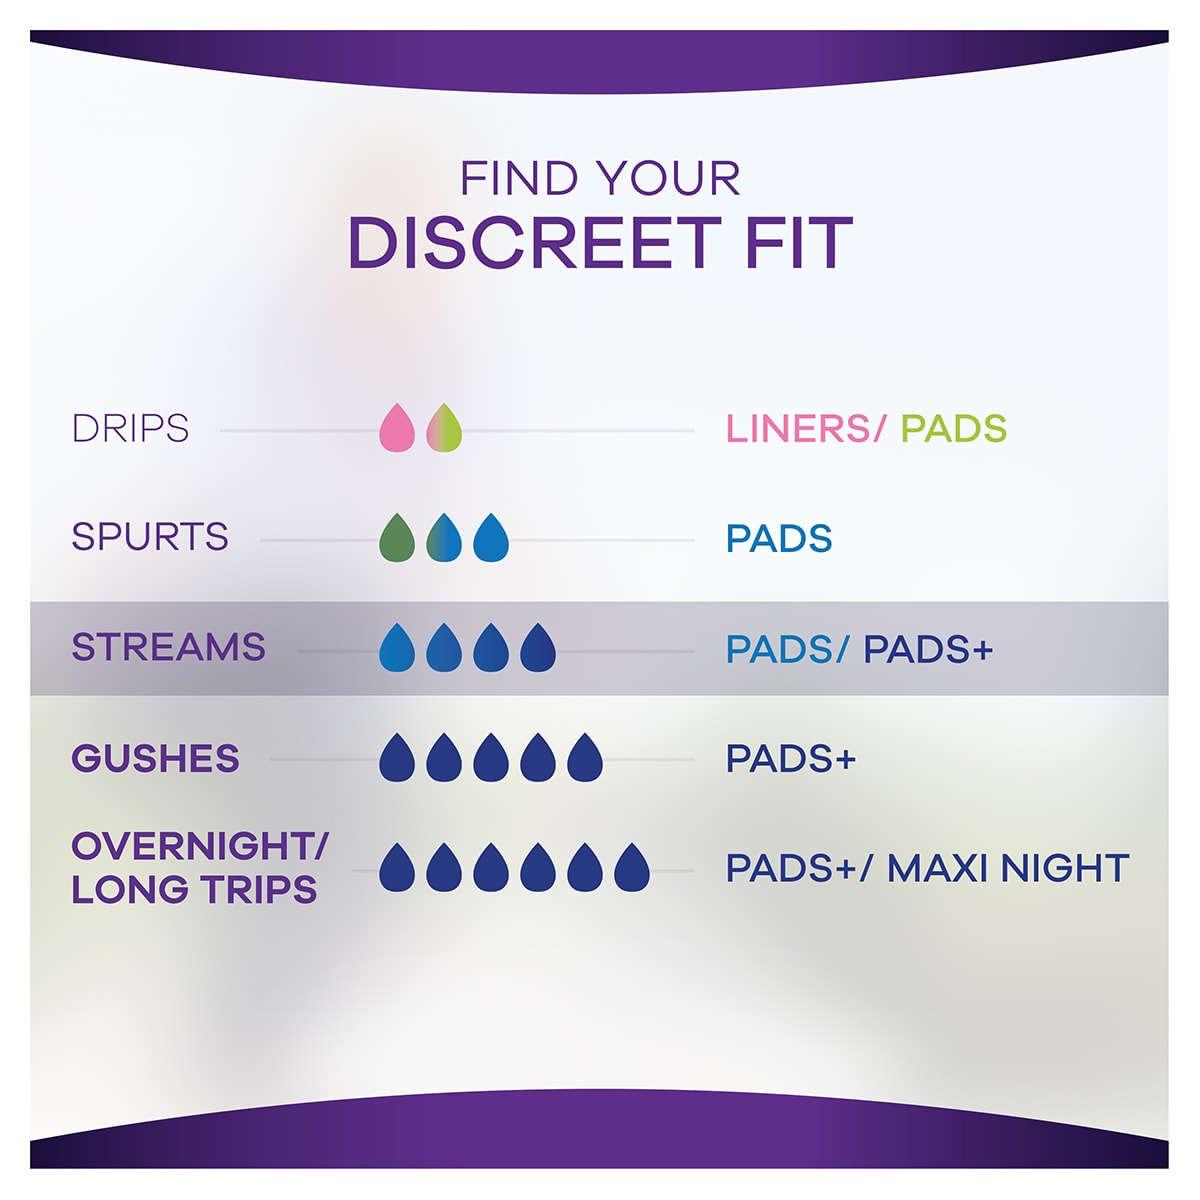 Always Discreet Pads Find Your Discreet Fit Pads Pads 1200x1200